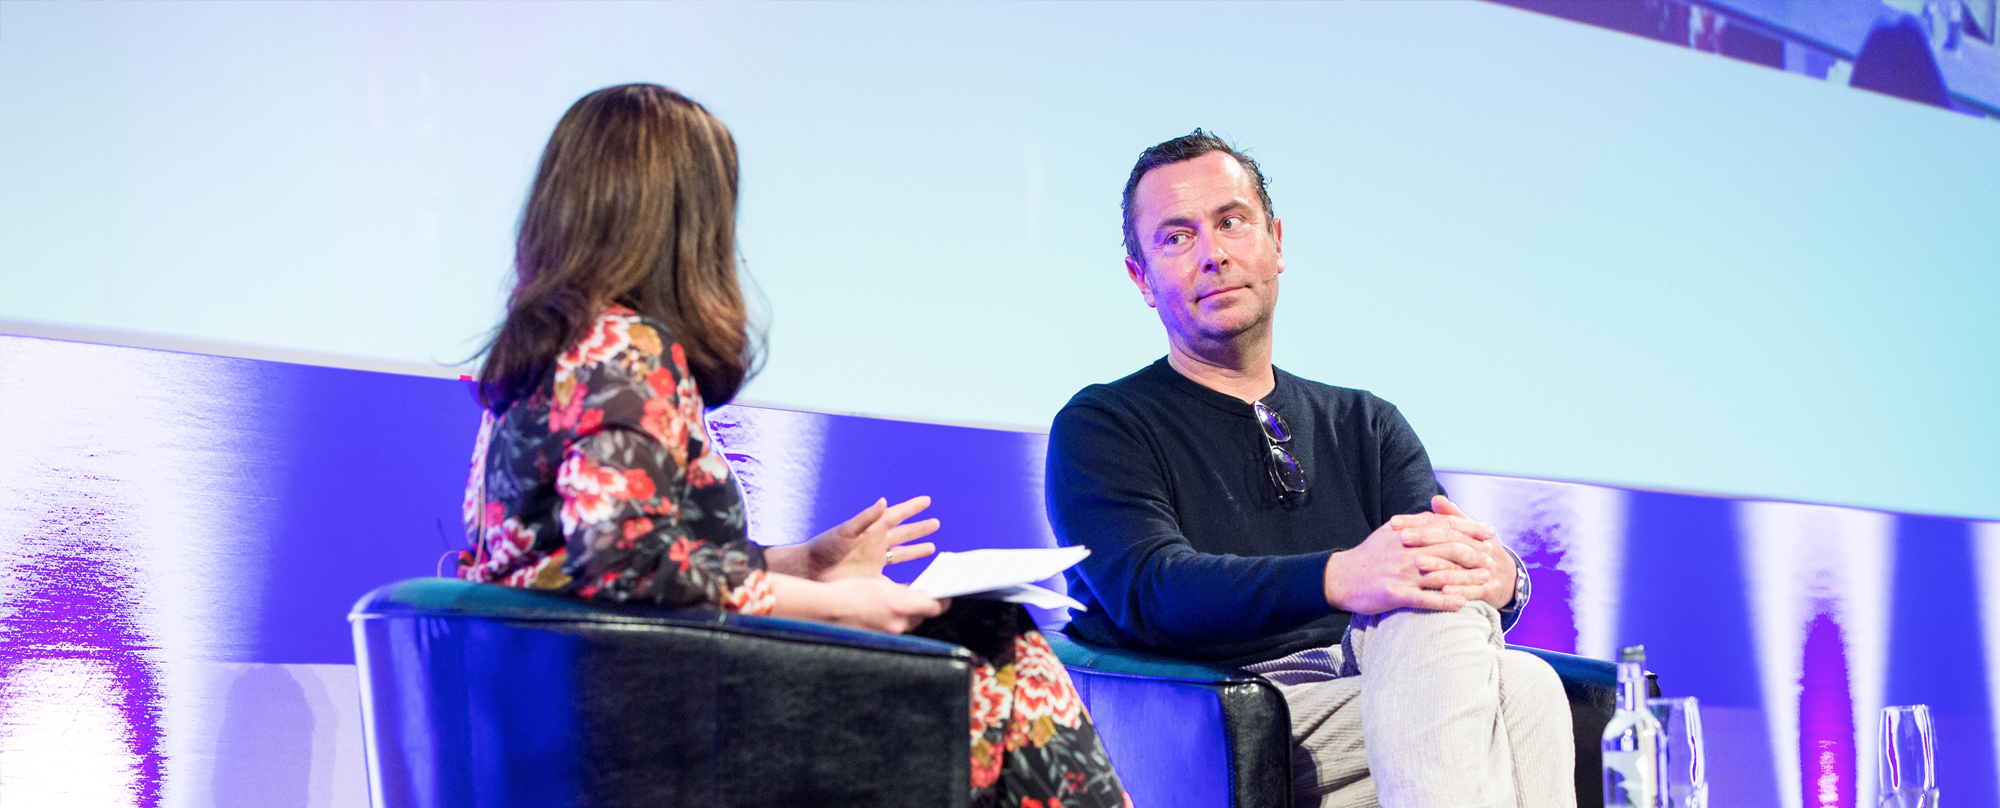 Salon Owners Summit 2020: Success Stories & Industry Trends